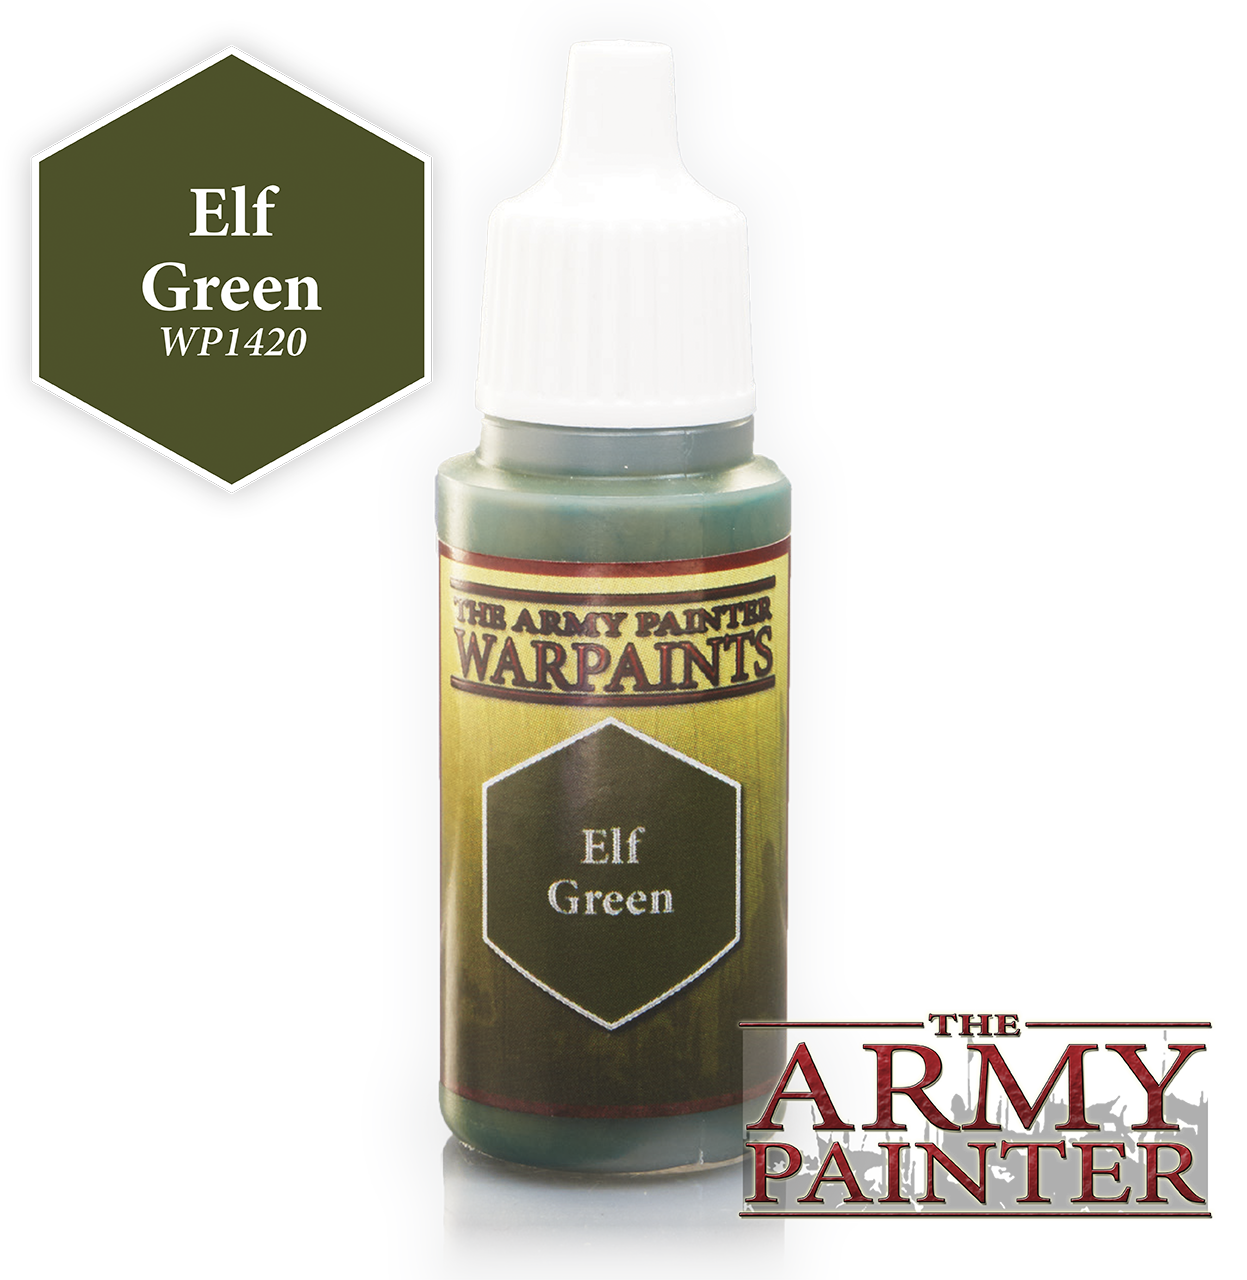 The ARMY PAINTER: Acrylics Warpaint - Elf Green | Tacoma Games